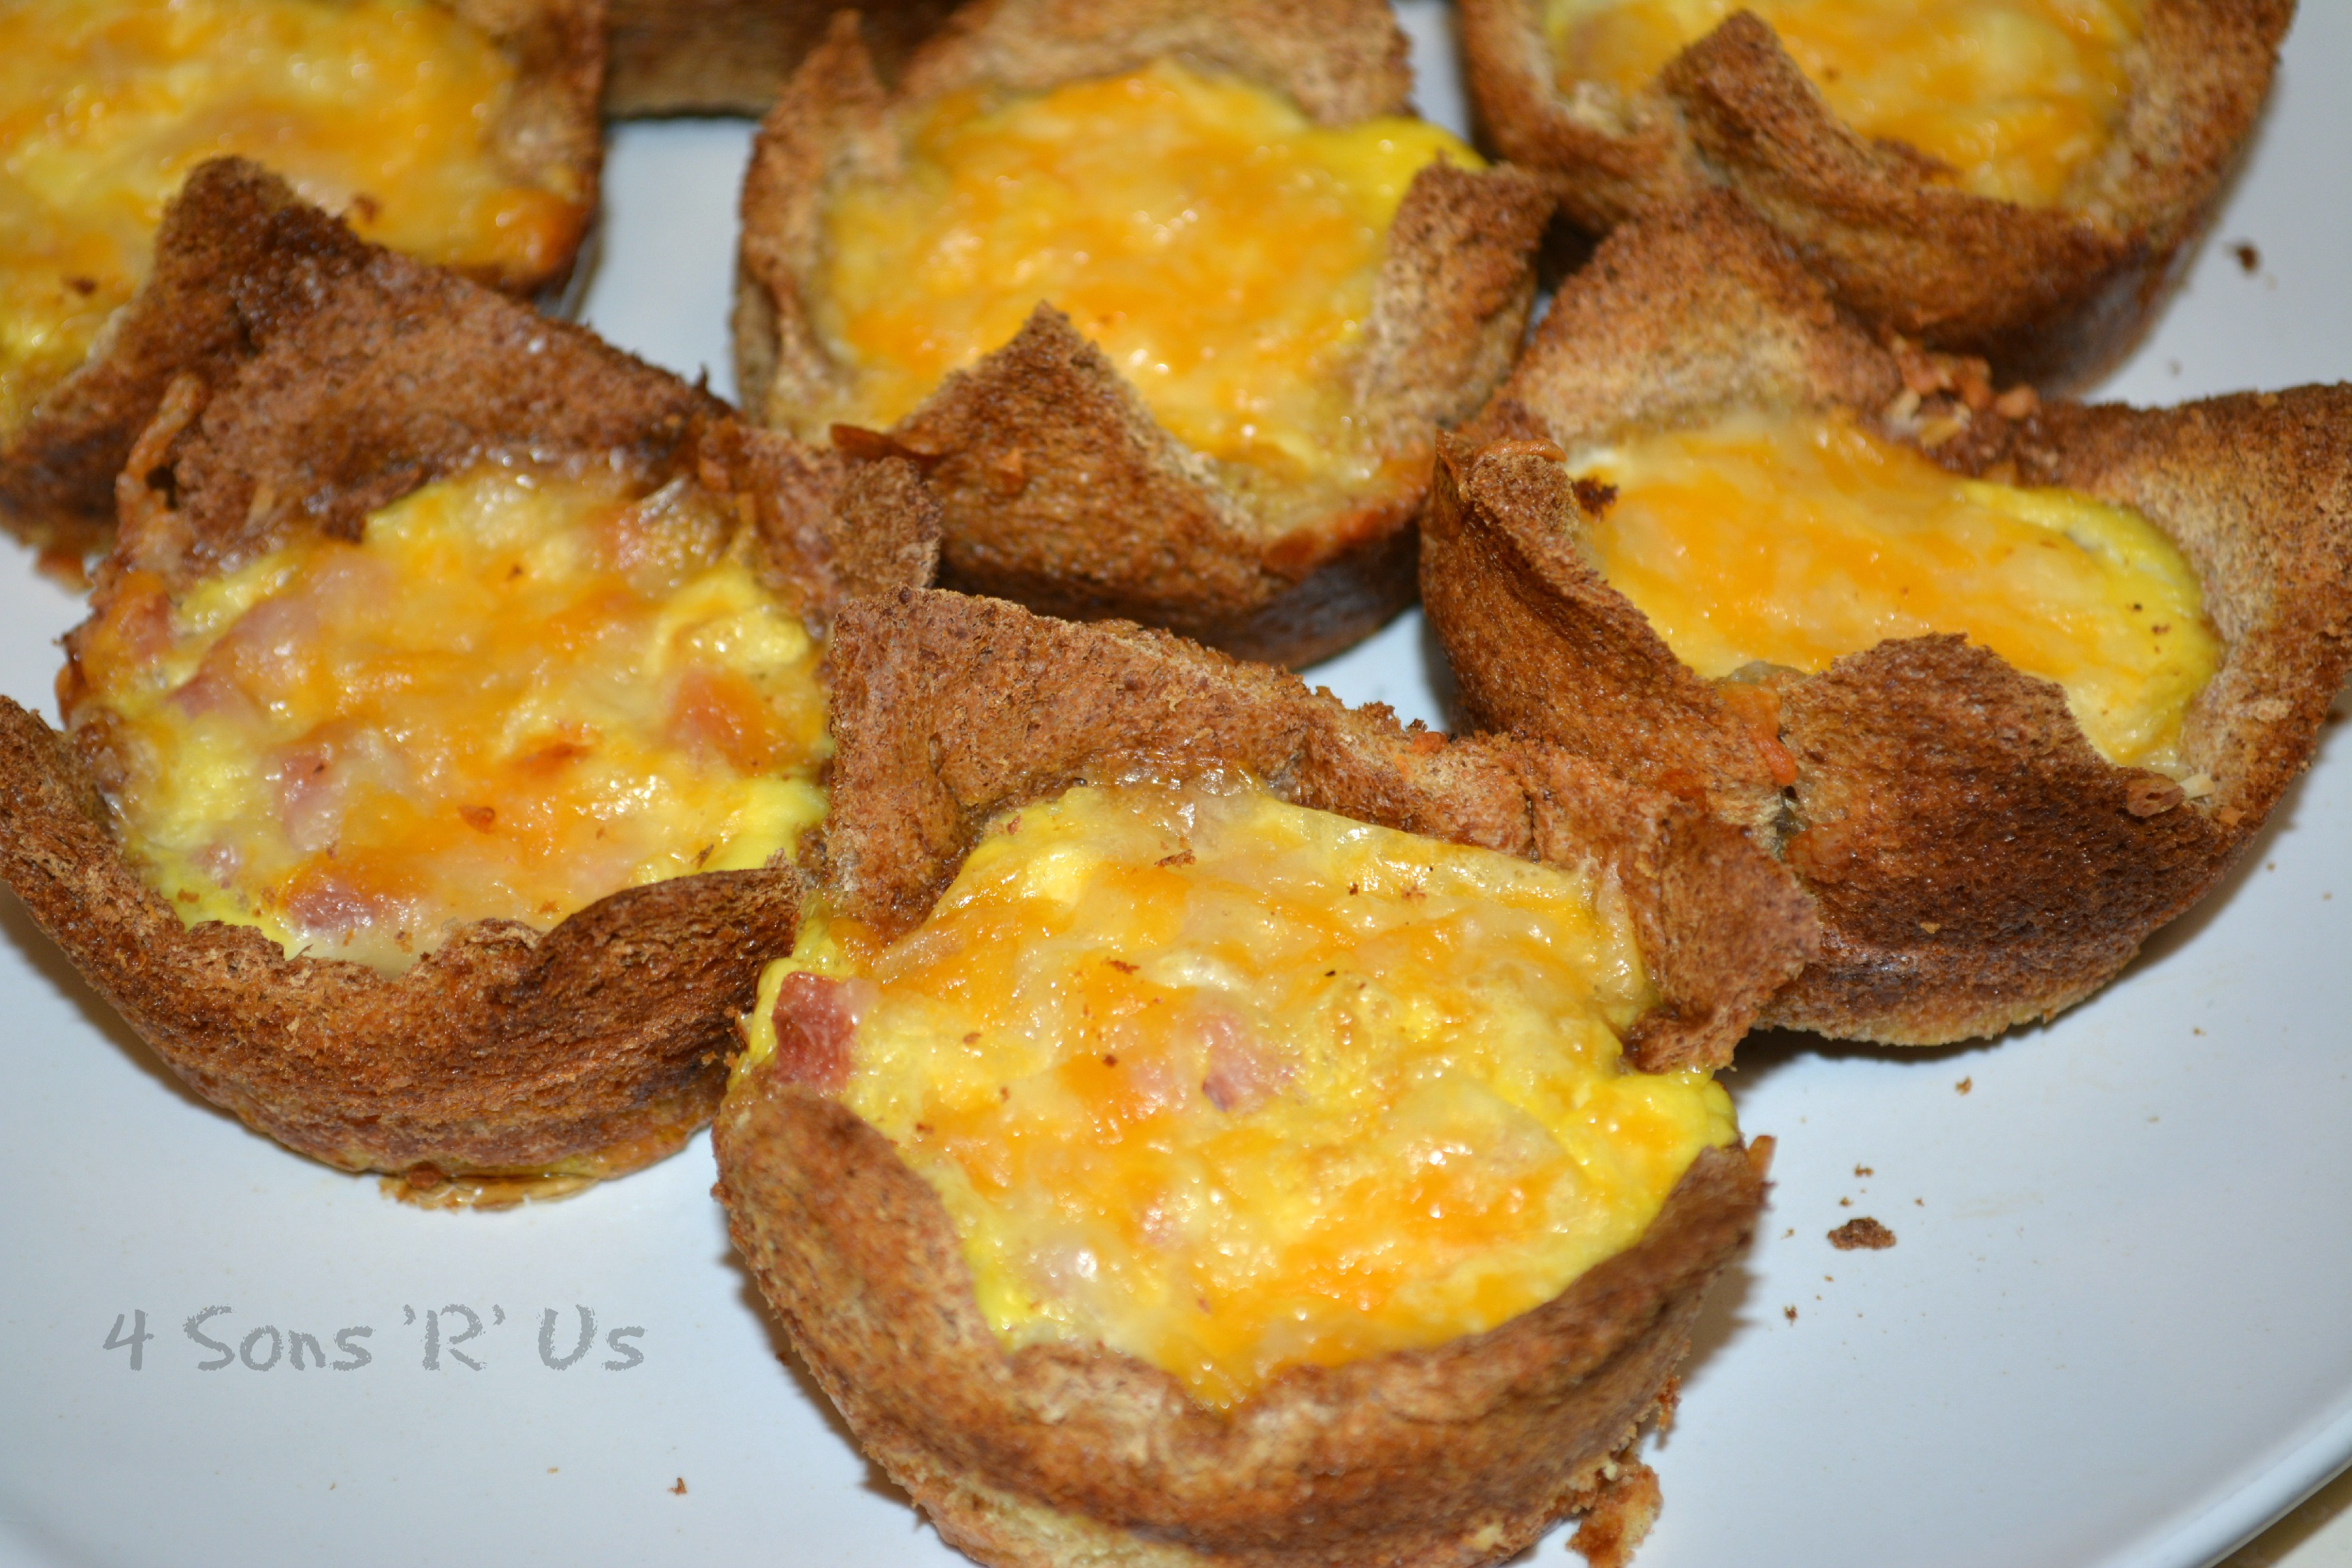 ... slices of bread 7 eggs ¾ cup shredded cheddar cheese 1 cup ham cubed